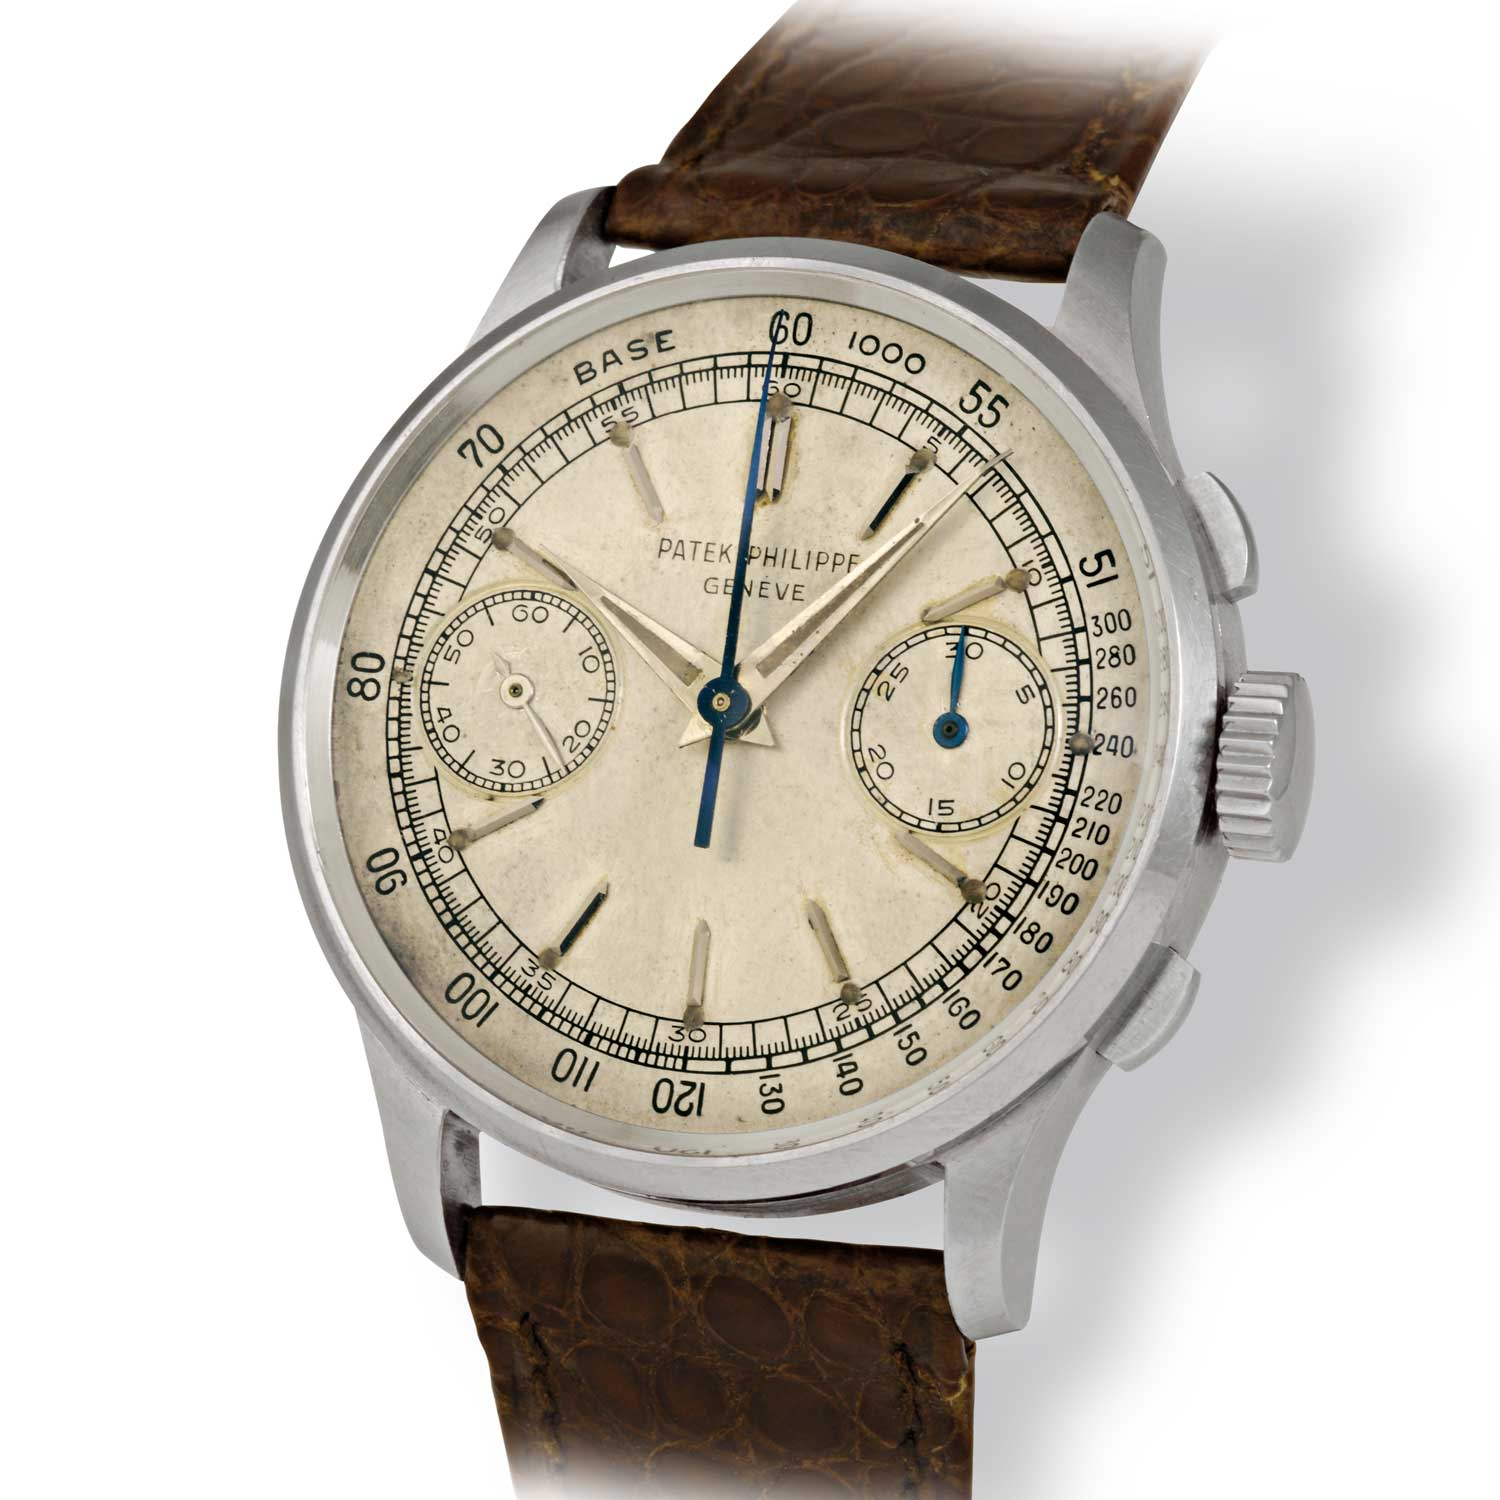 Patek Philippe ref. 130 steel chronograph with baton markers (Image: John Goldberger)